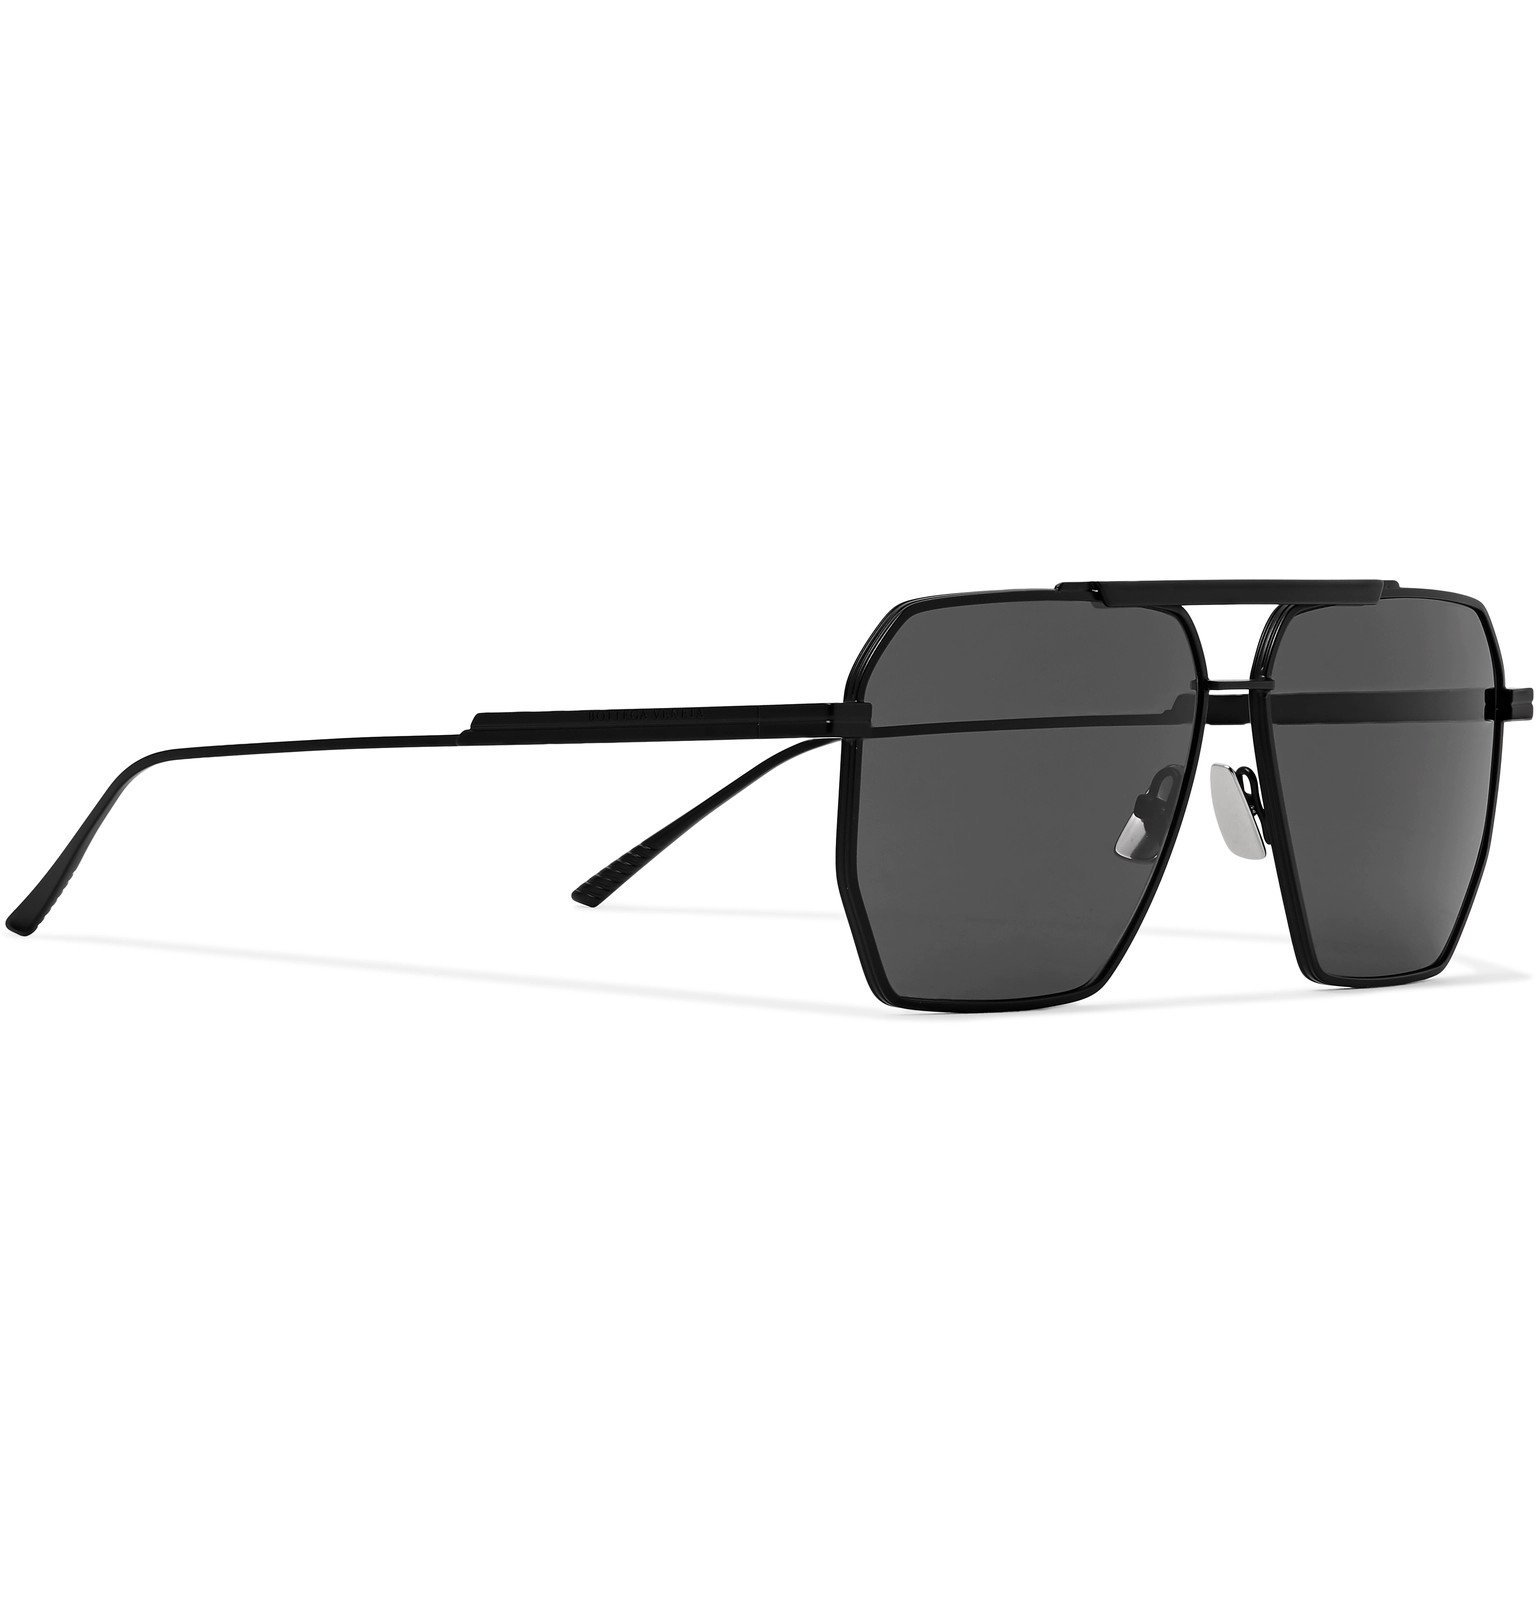 Bottega Veneta - Aviator-Style Metal Sunglasses - Black